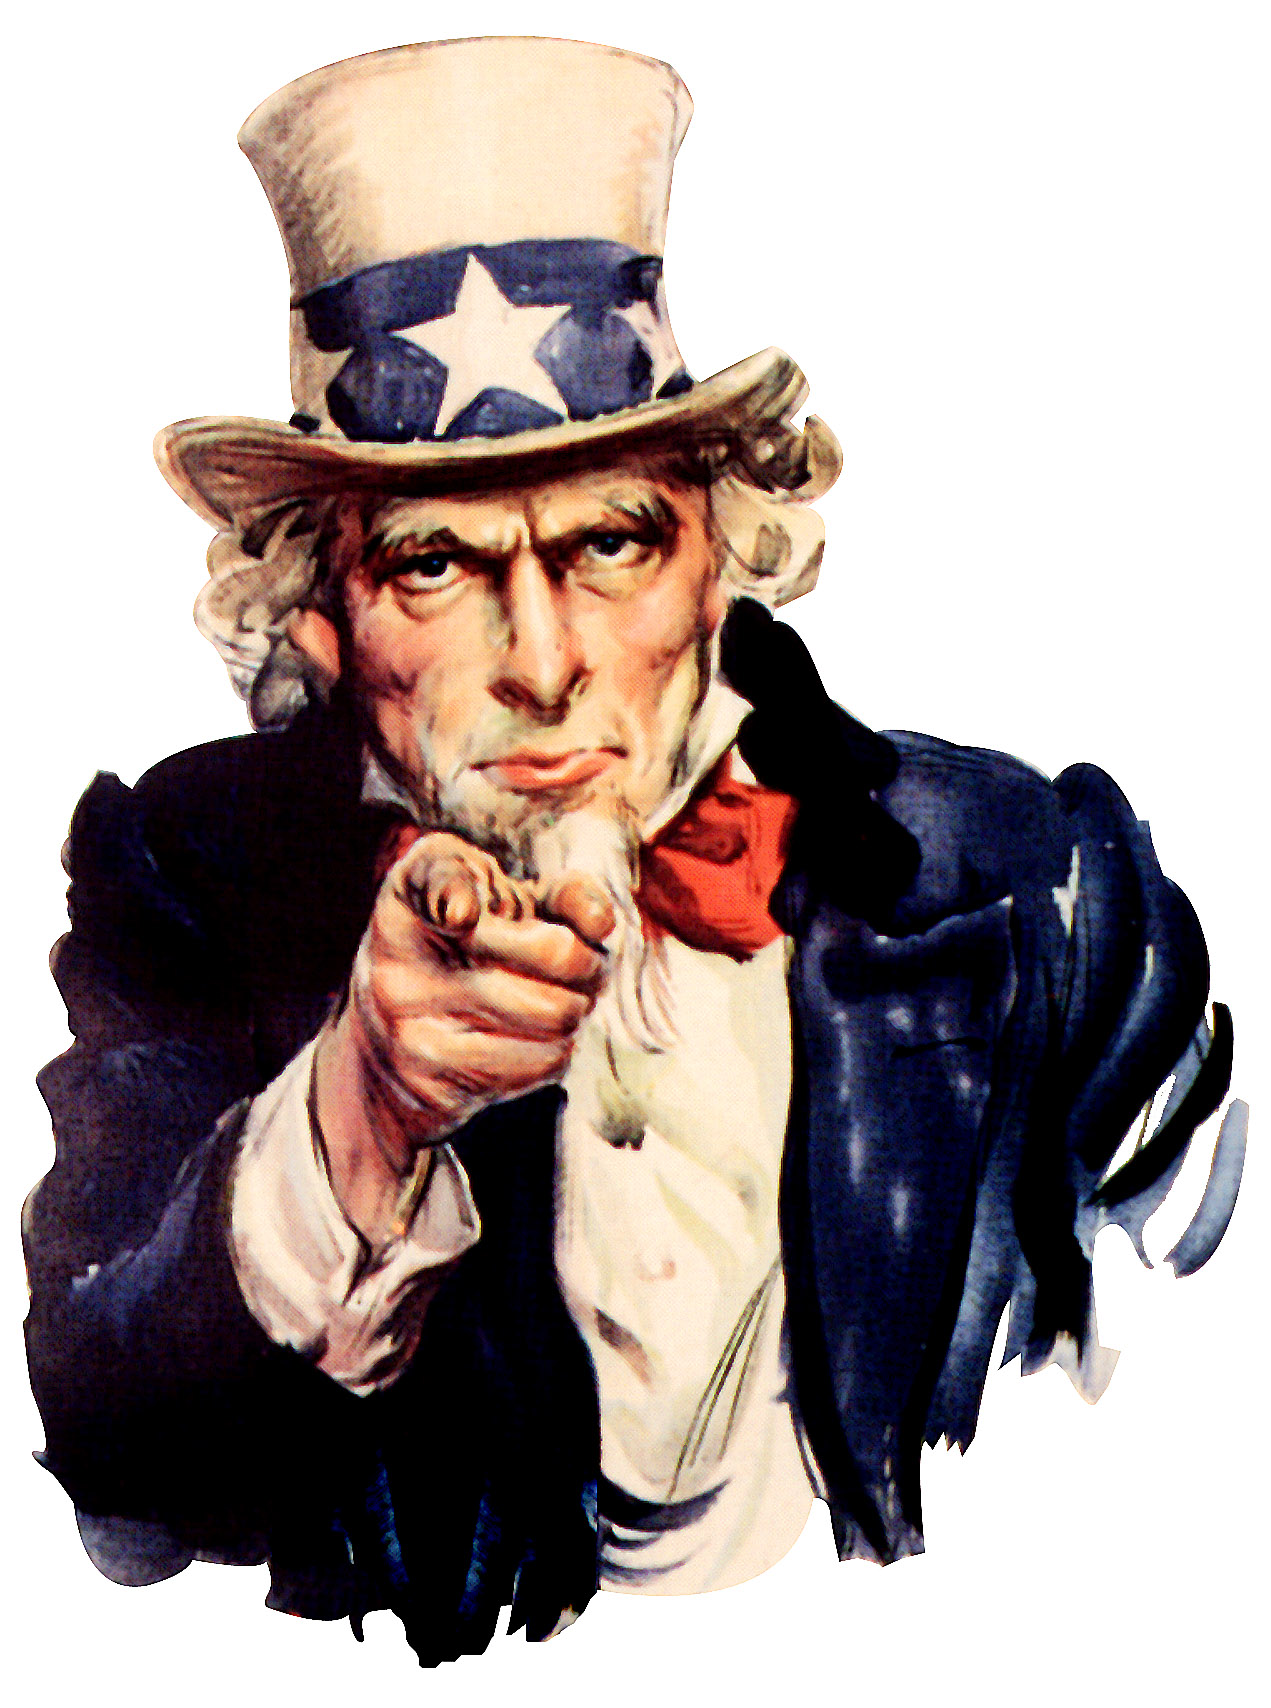 Uncle sam pointing finger at camera